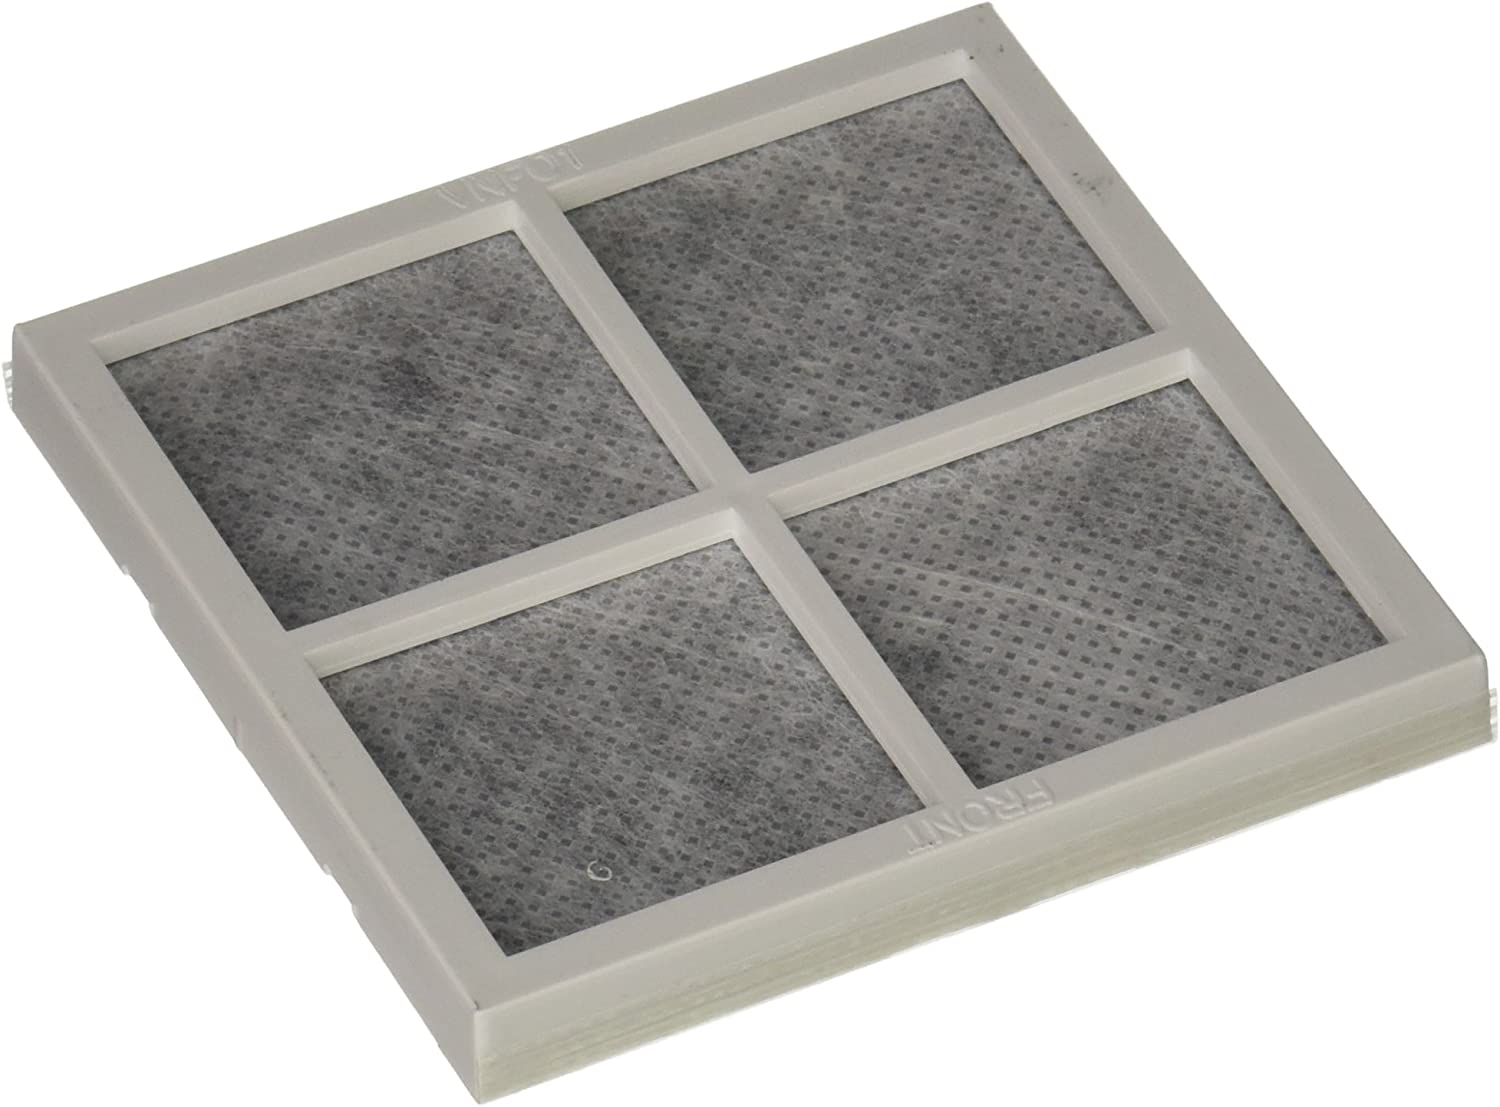 8 Pack Refrigerator Air Filter Compatible with LG LFXS29626S//01